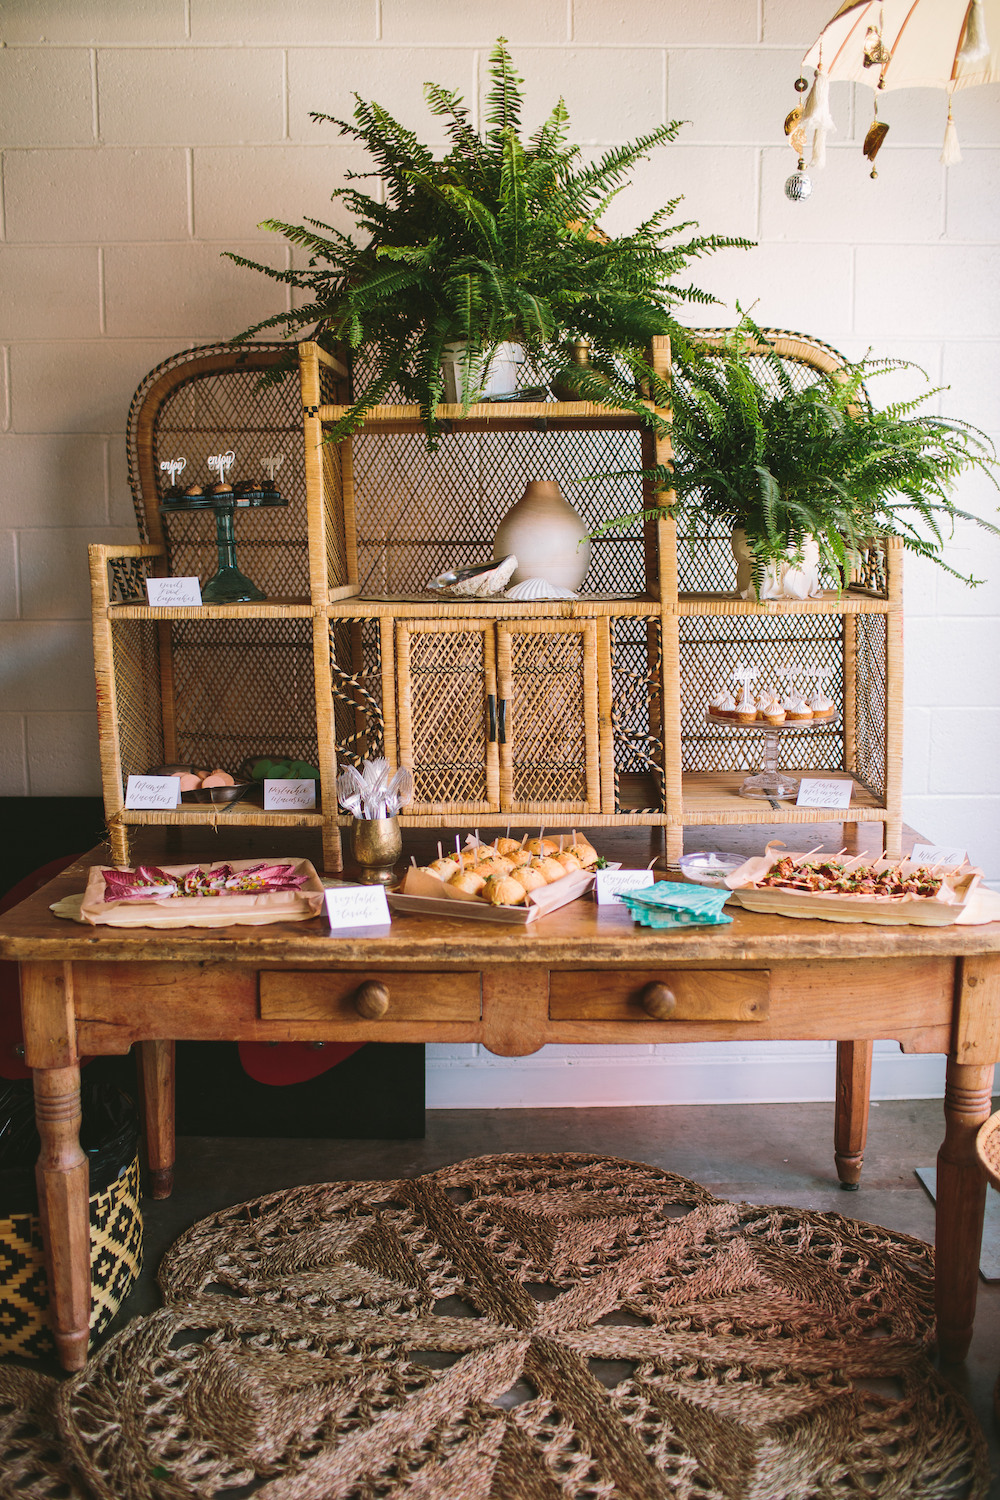 Bohemian food display